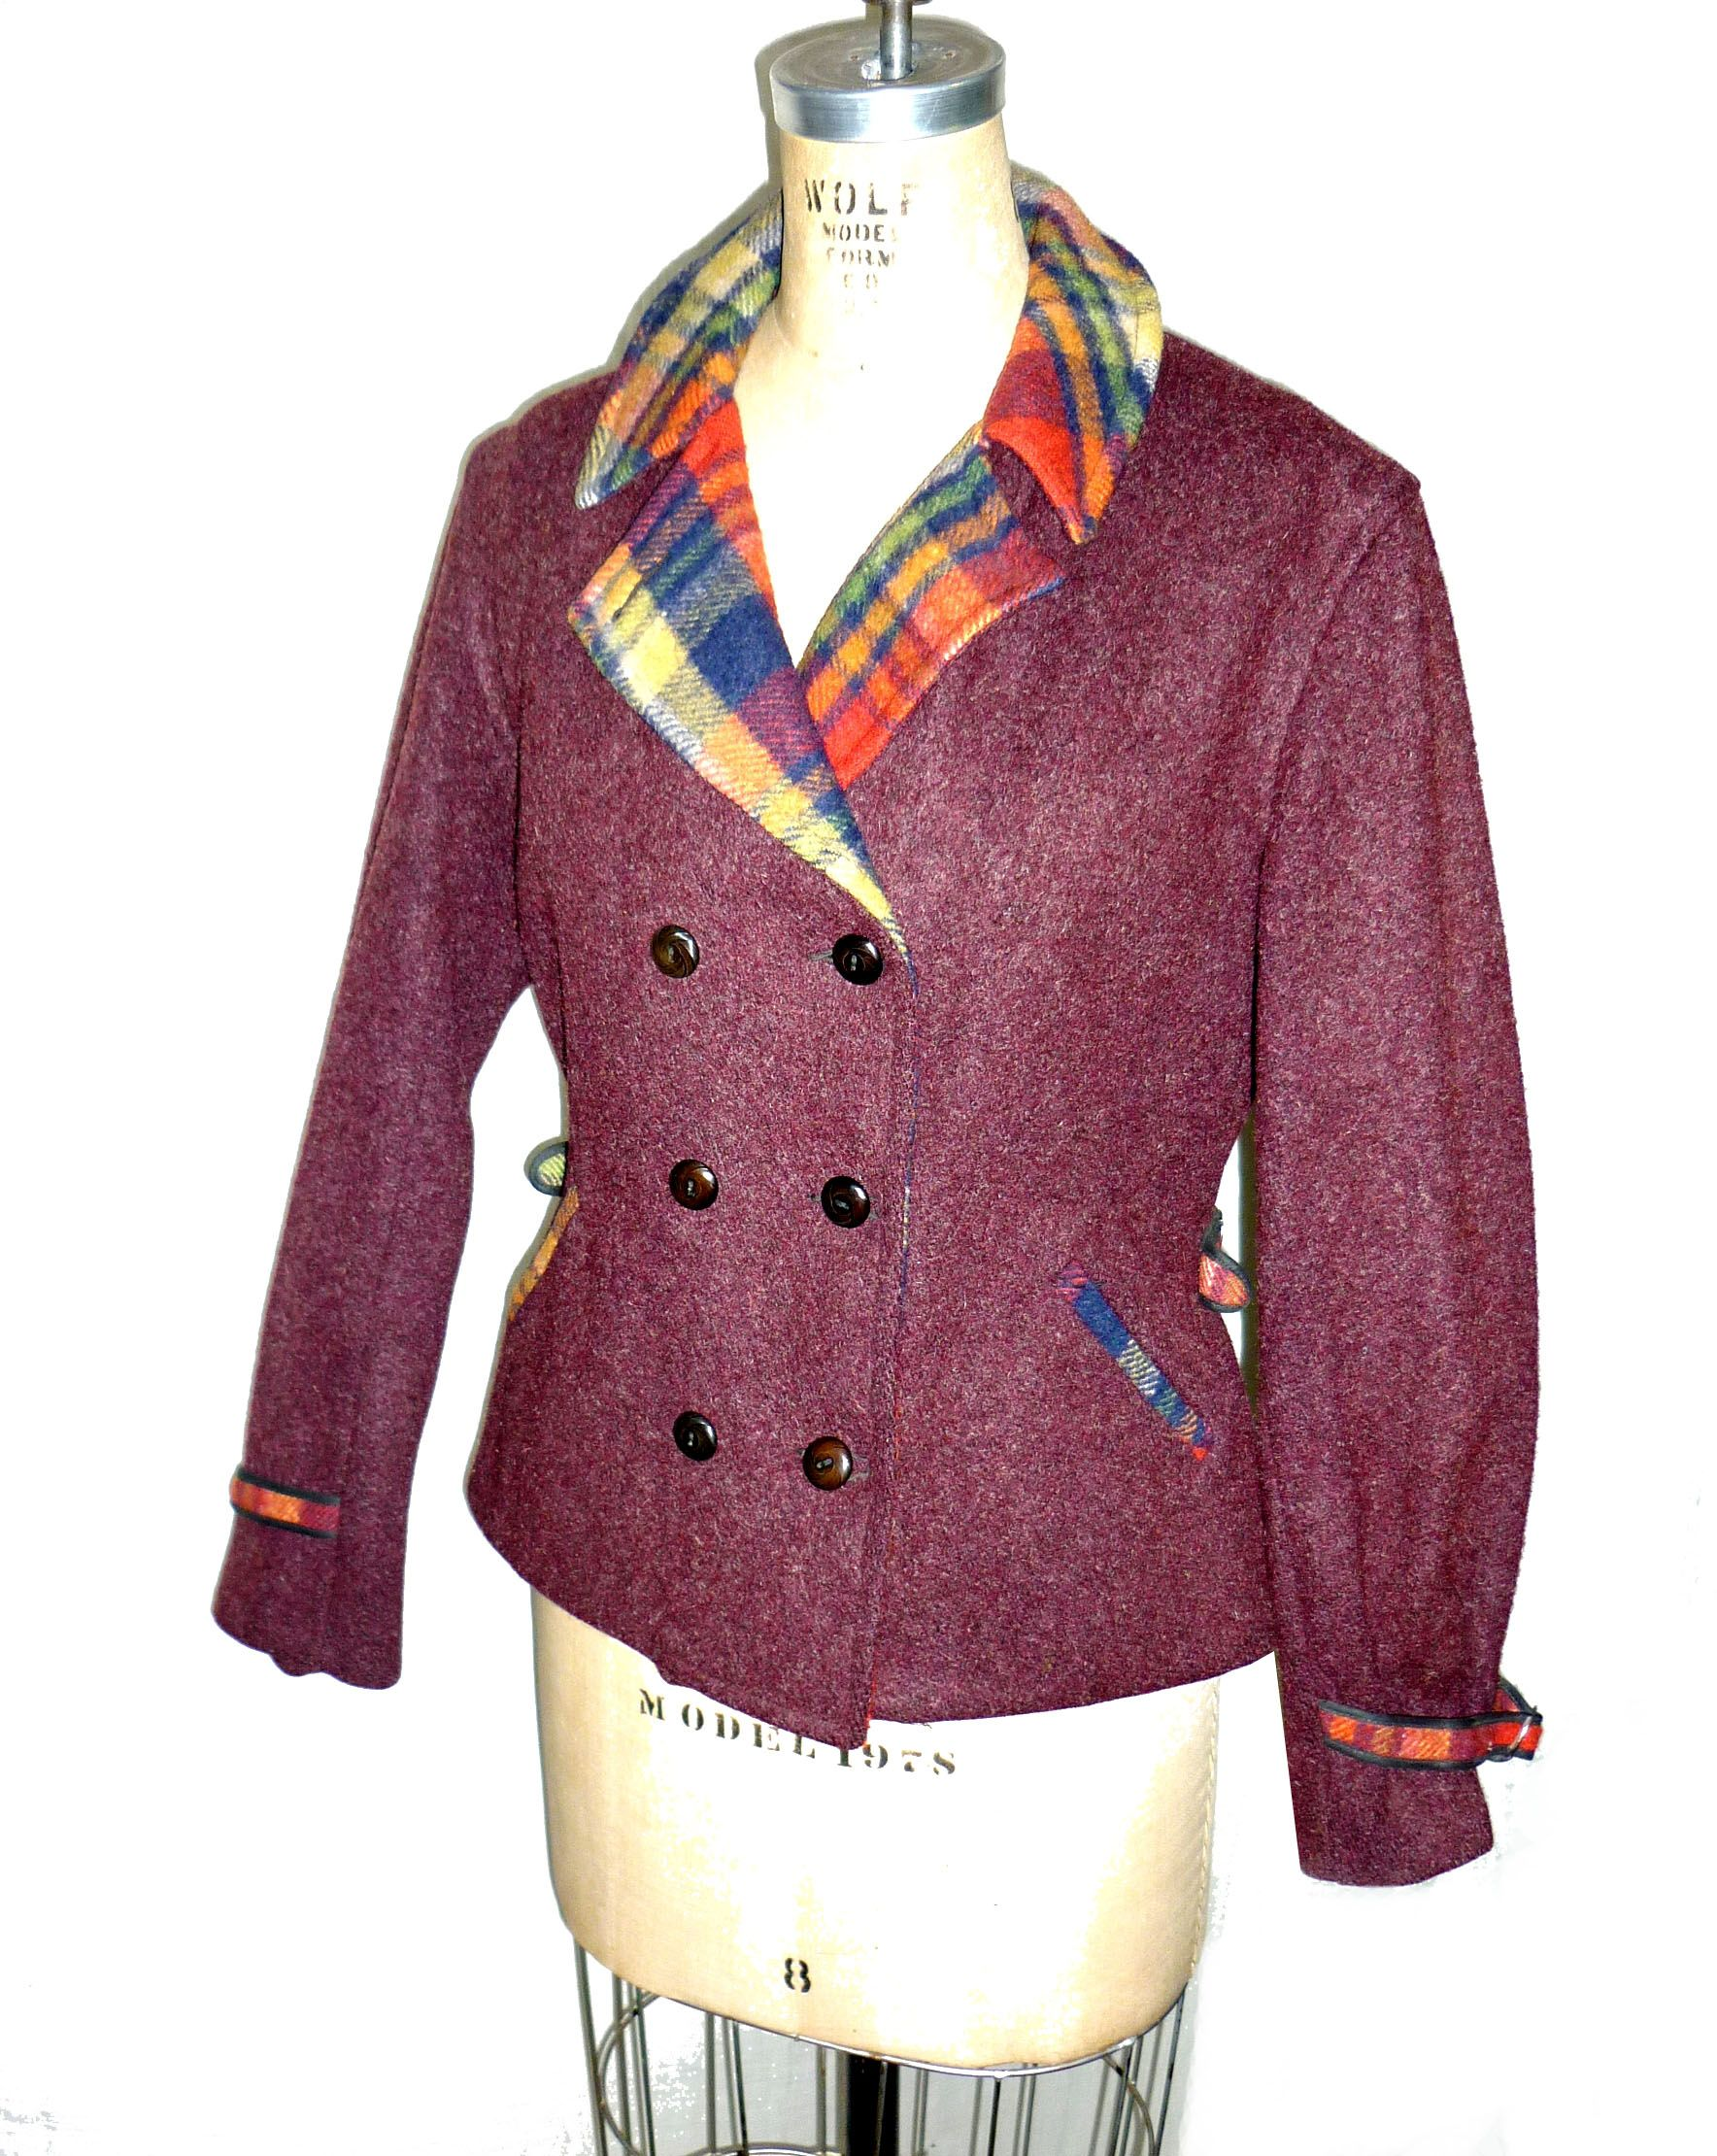 Late 1930's woman's wool jacket with Norfolk back.    We carry outer jackets, capes, capelets, coats from mid-1800s to 1970s.